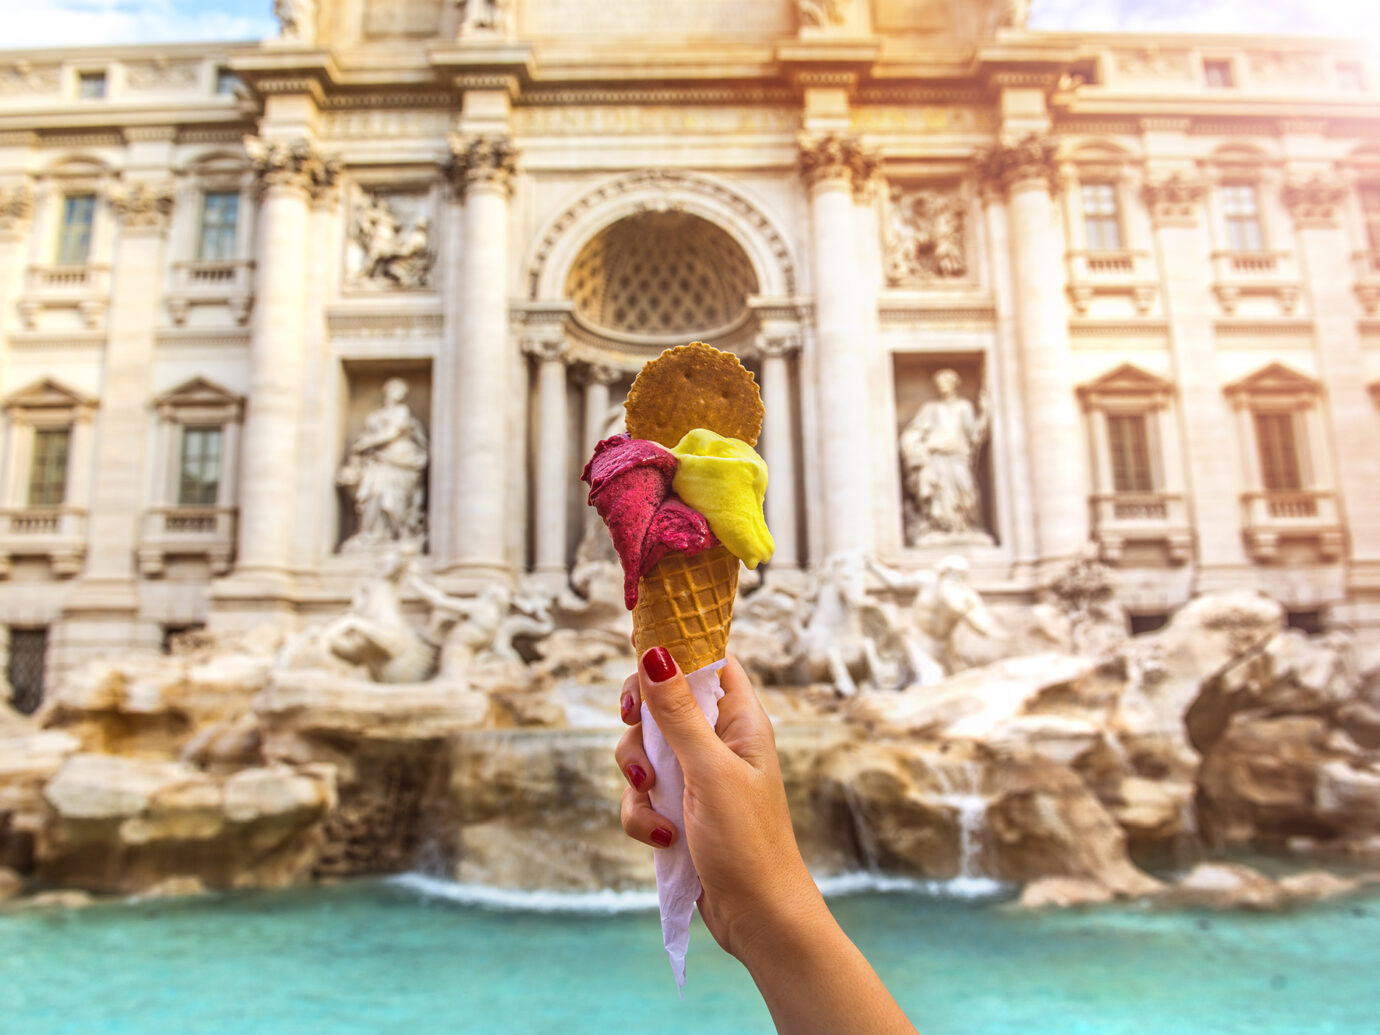 Hand holding colorful gelato in front of famous iconic Trevi Fountain at Rome, Italy.